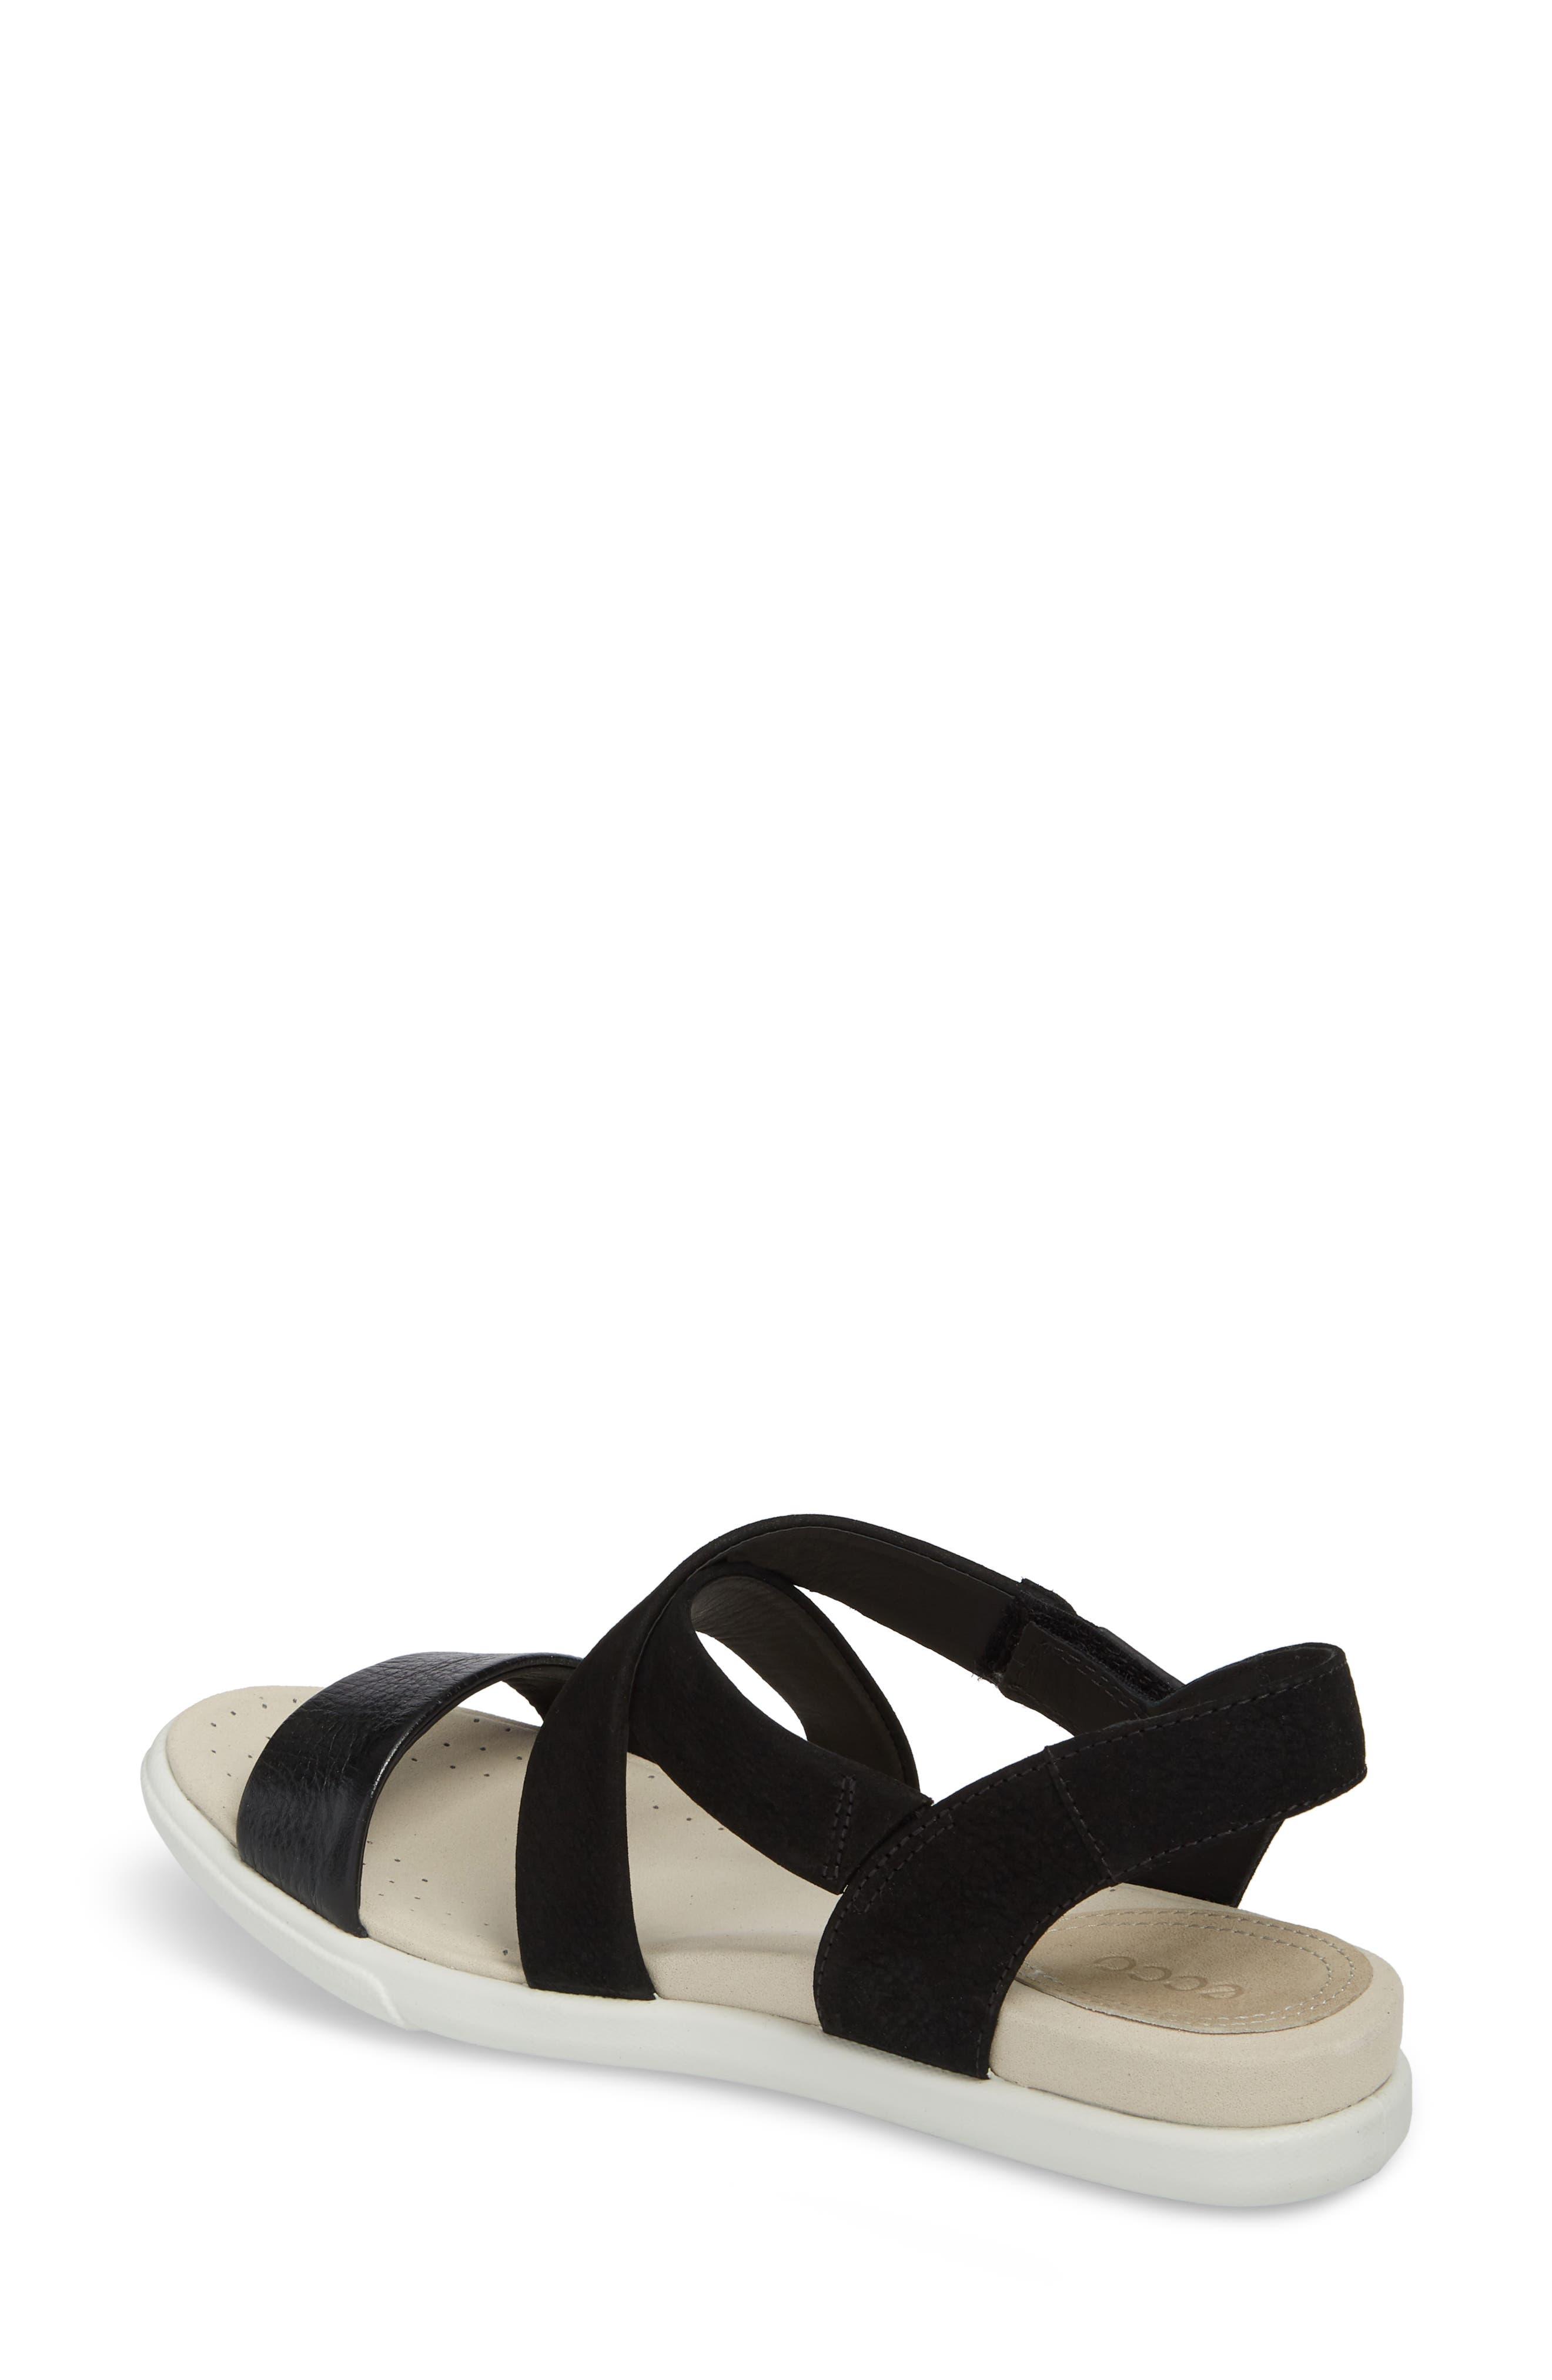 Damara Cross-Strap Sandal,                             Alternate thumbnail 8, color,